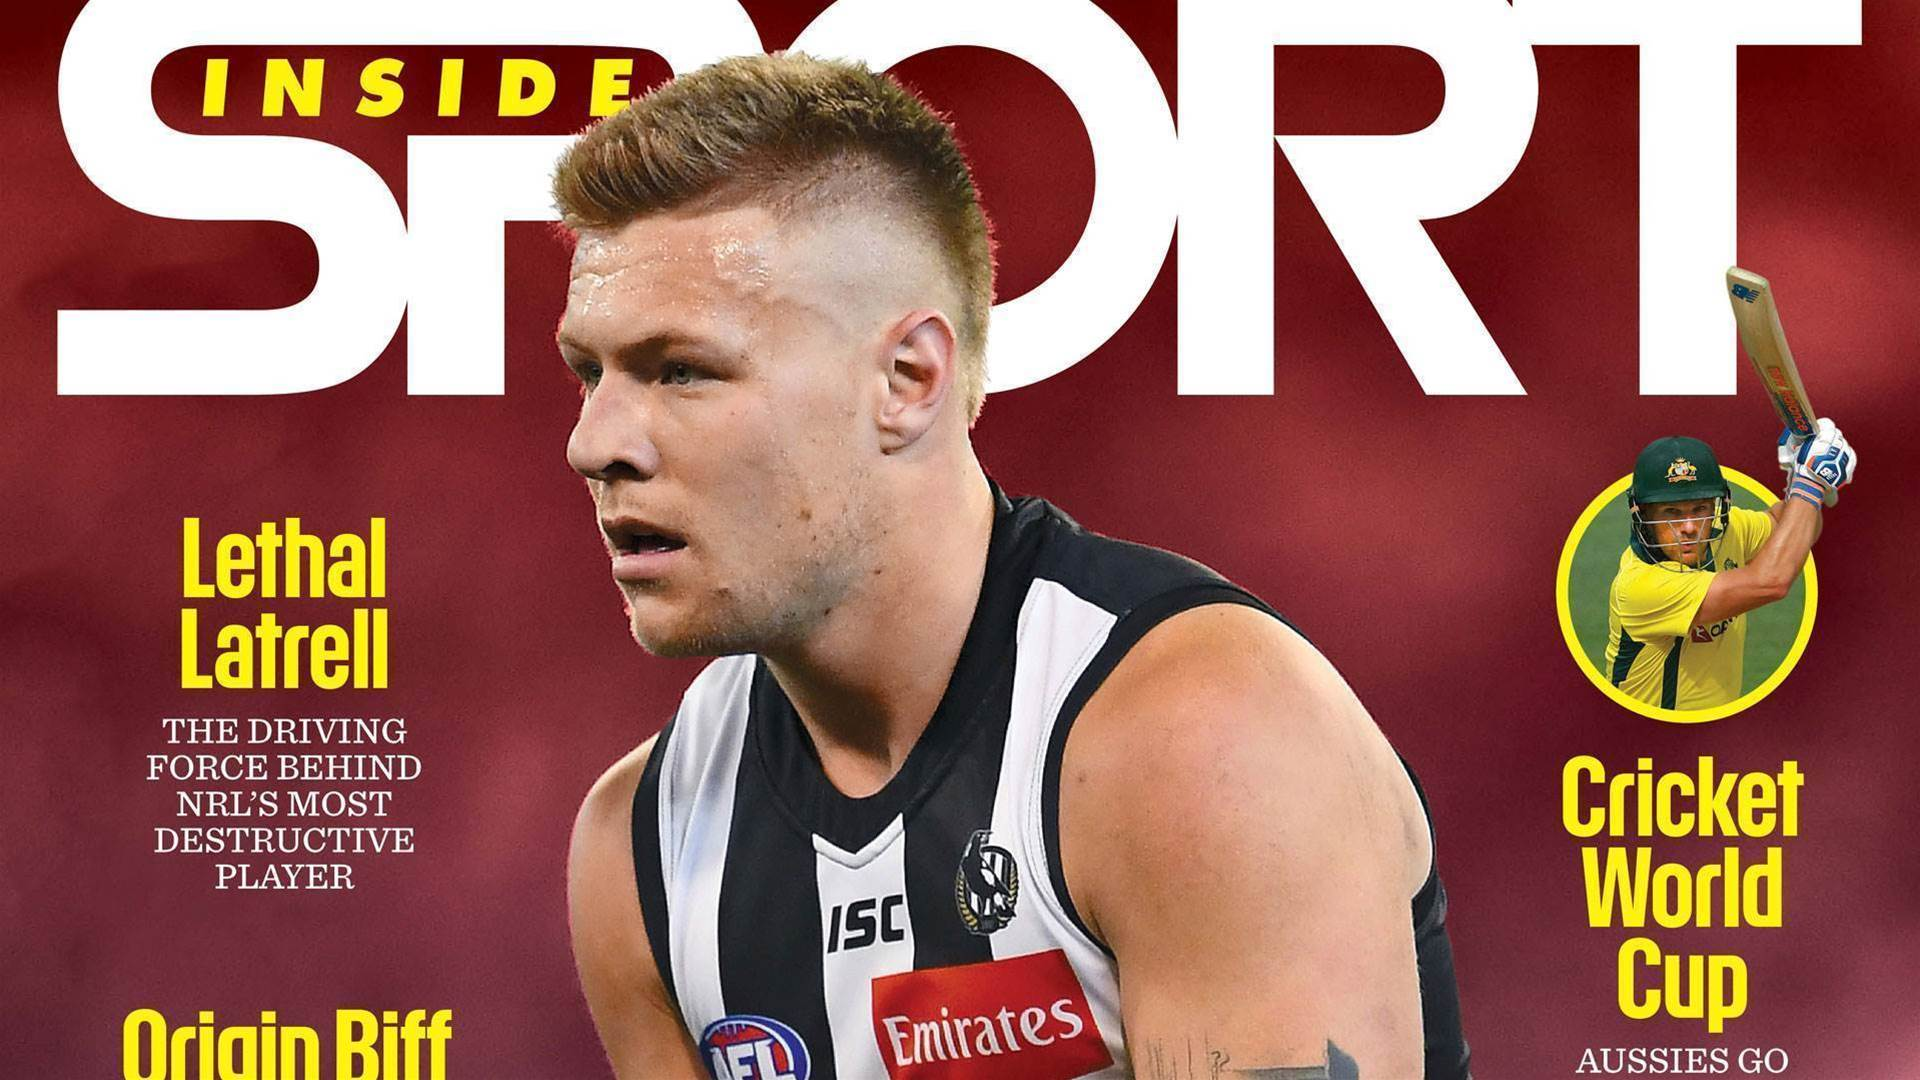 June 2019 issue of Inside Sport on sale now